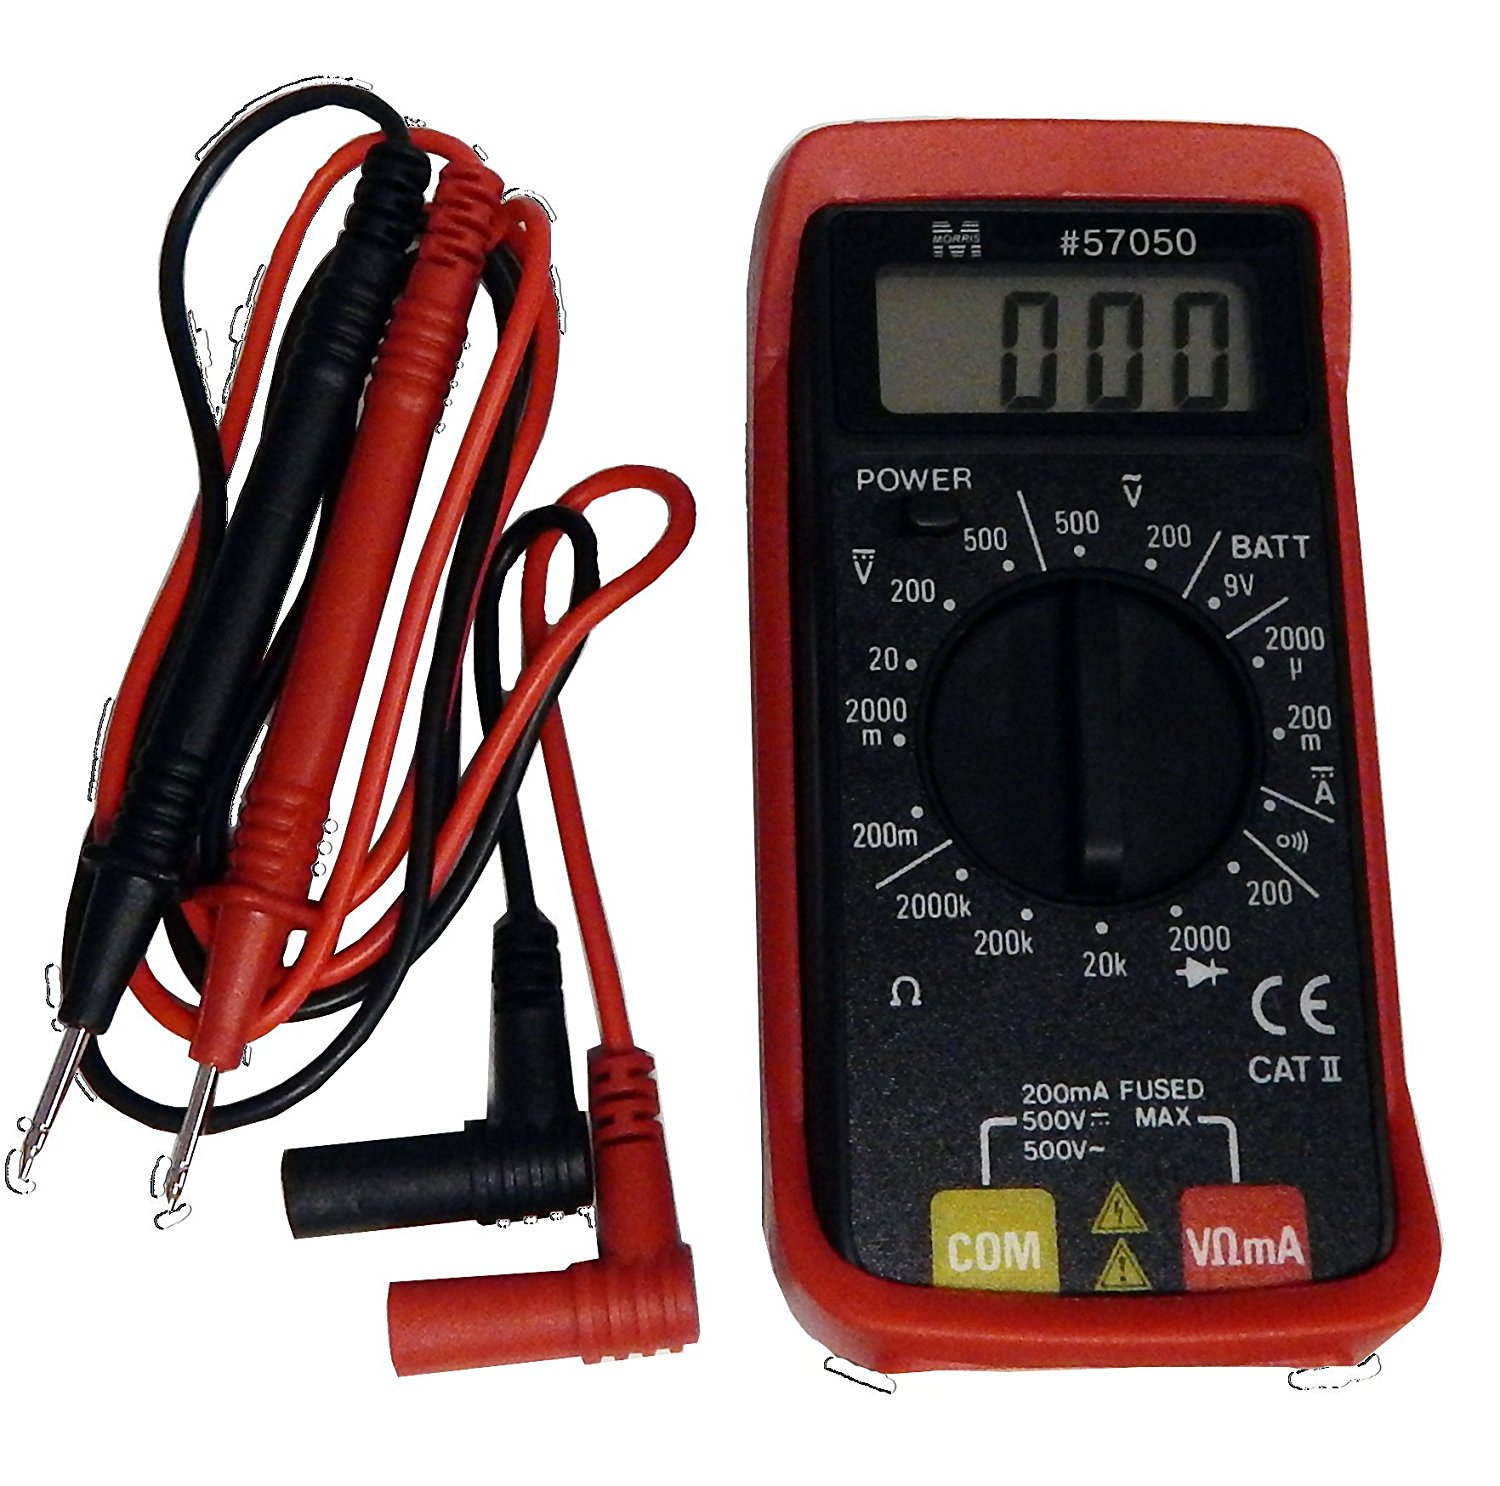 Morris Products 57050 Super Mini Digital Multimeter with Rubber Holster